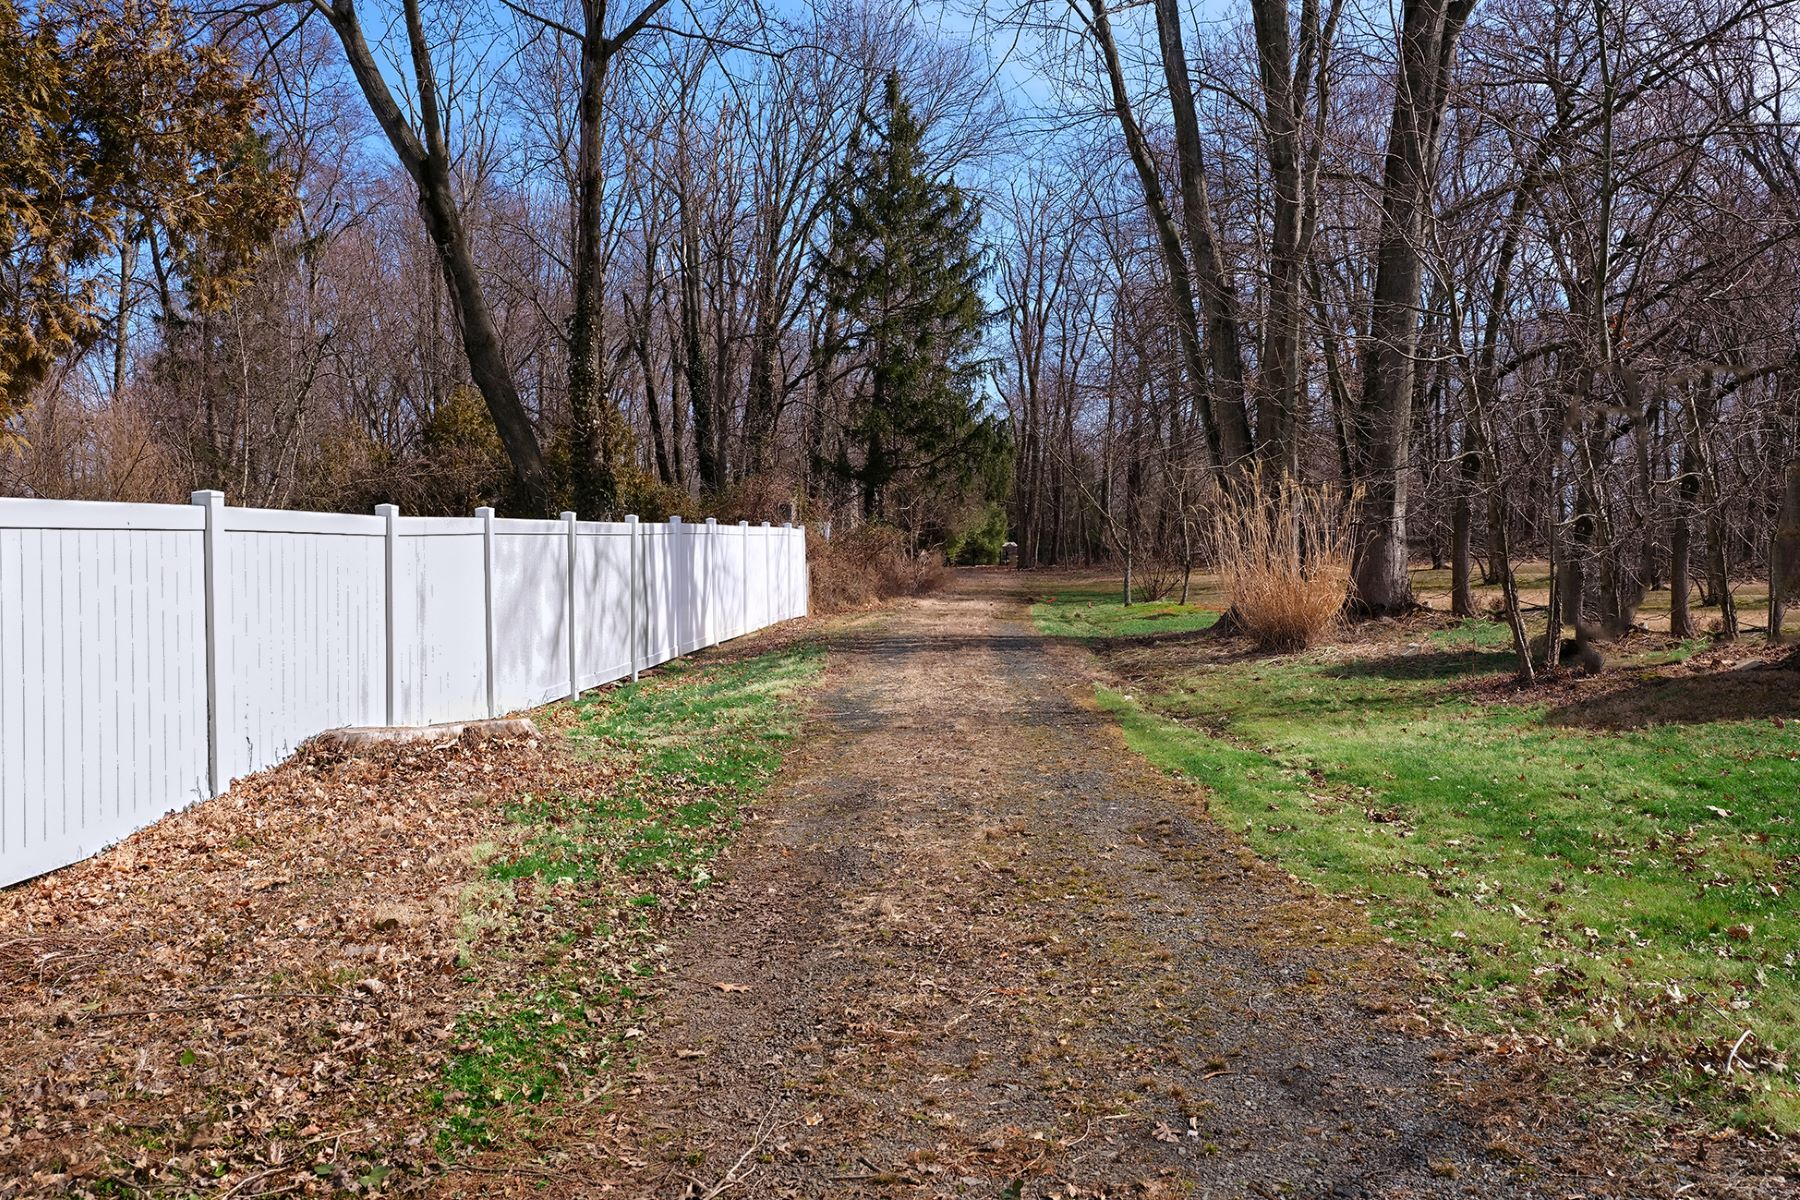 Land for Sale at Rare Opportunity in the Heart of Pennington Boro 417B South Main Street, Pennington, New Jersey 08534 United States